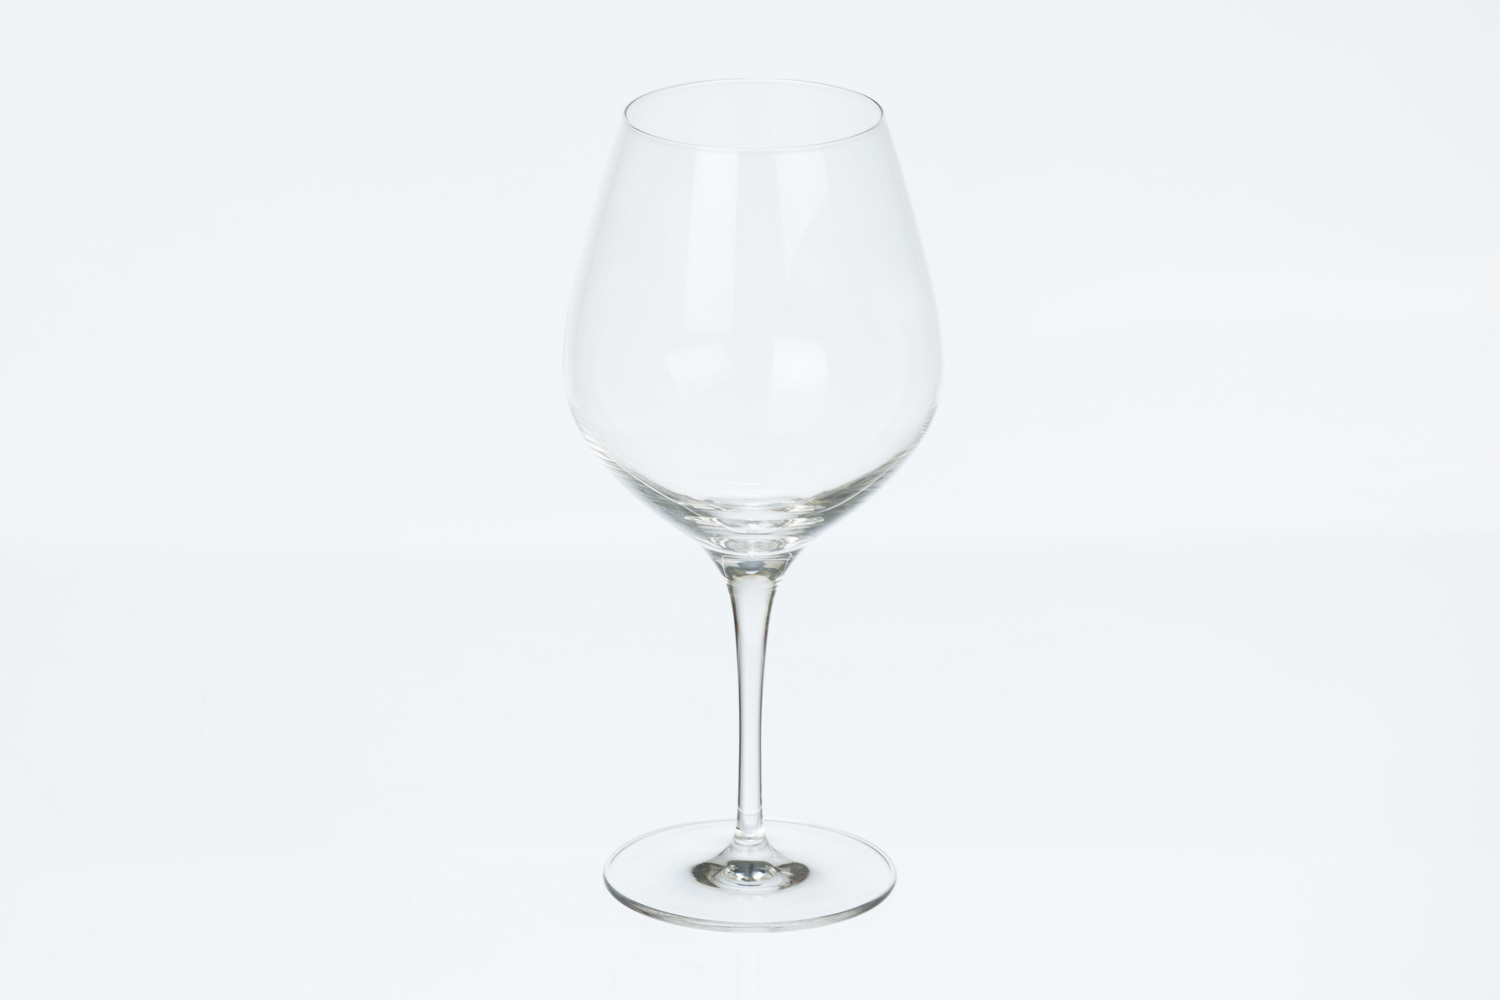 Exquisit Crystal Burgundy Wine Glass